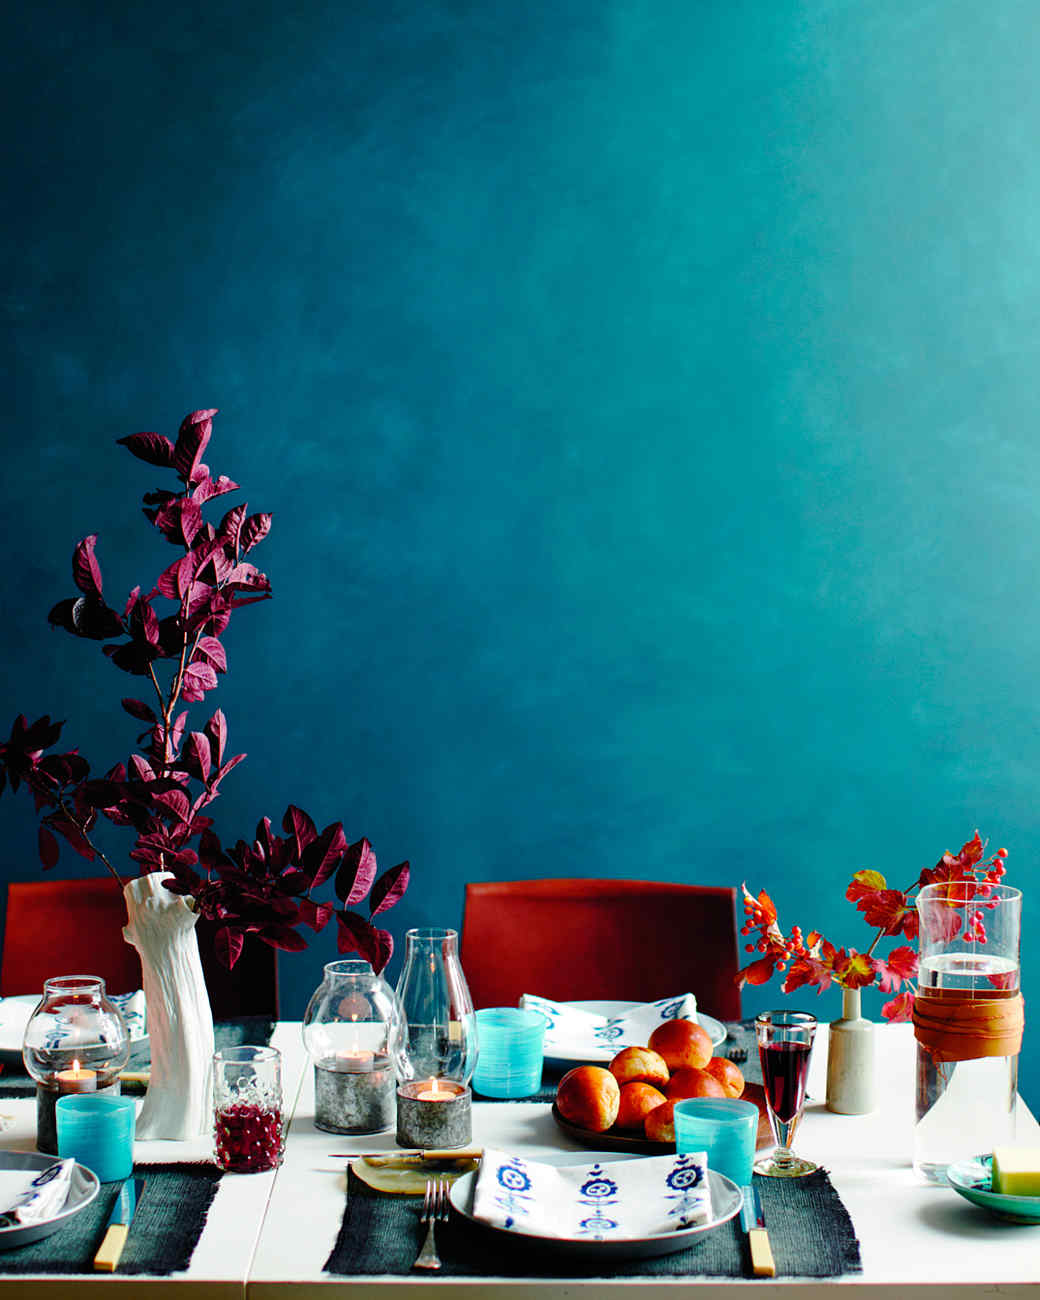 table-settings-ayesha-mld107802.jpg